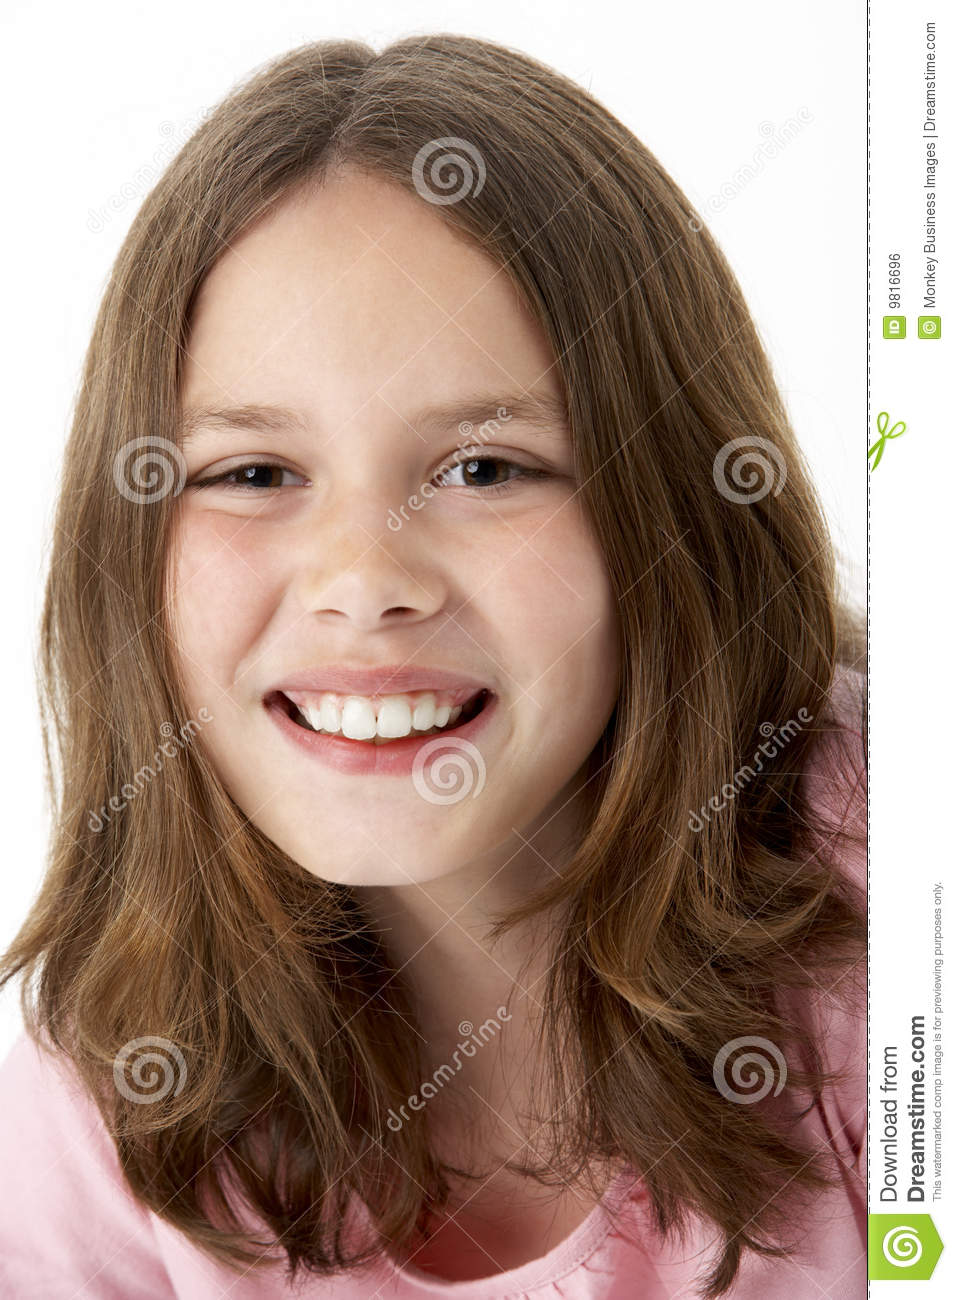 Young Girl Models Nn: Portrait Of Smiling Young Girl Stock Photo